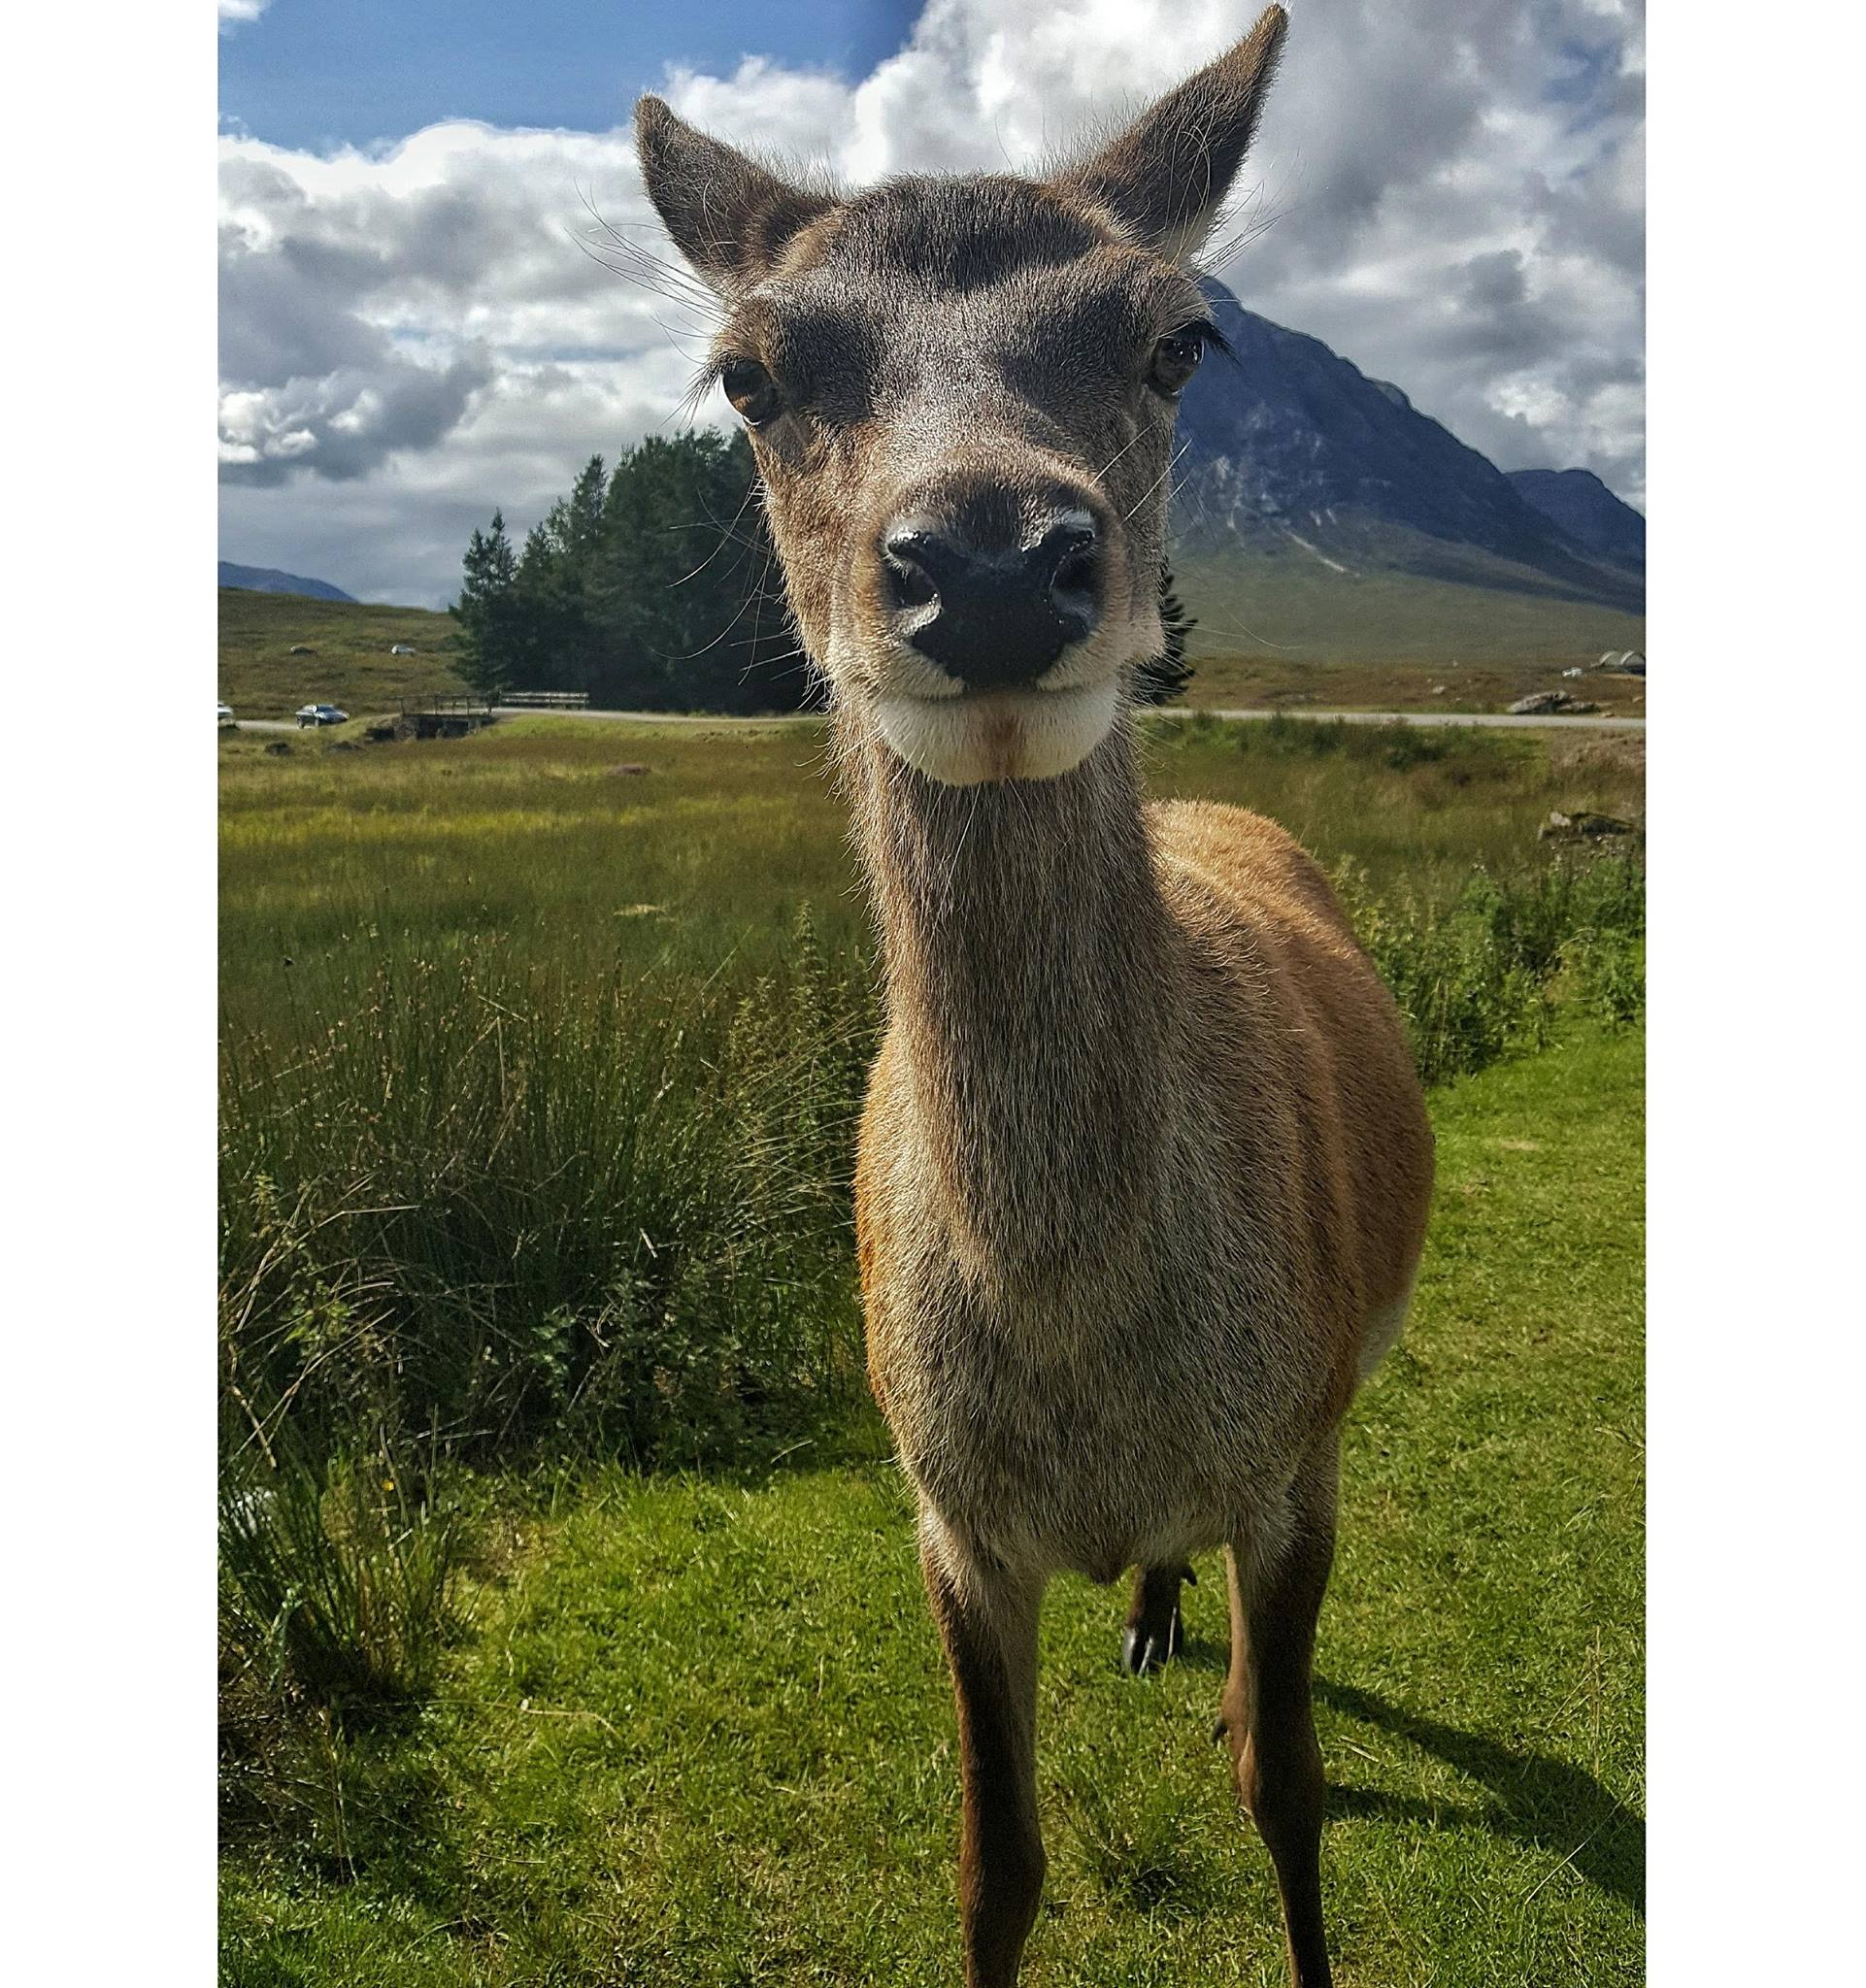 Making deer friends in Glen Coe last summer. Image by Bianca Sala.